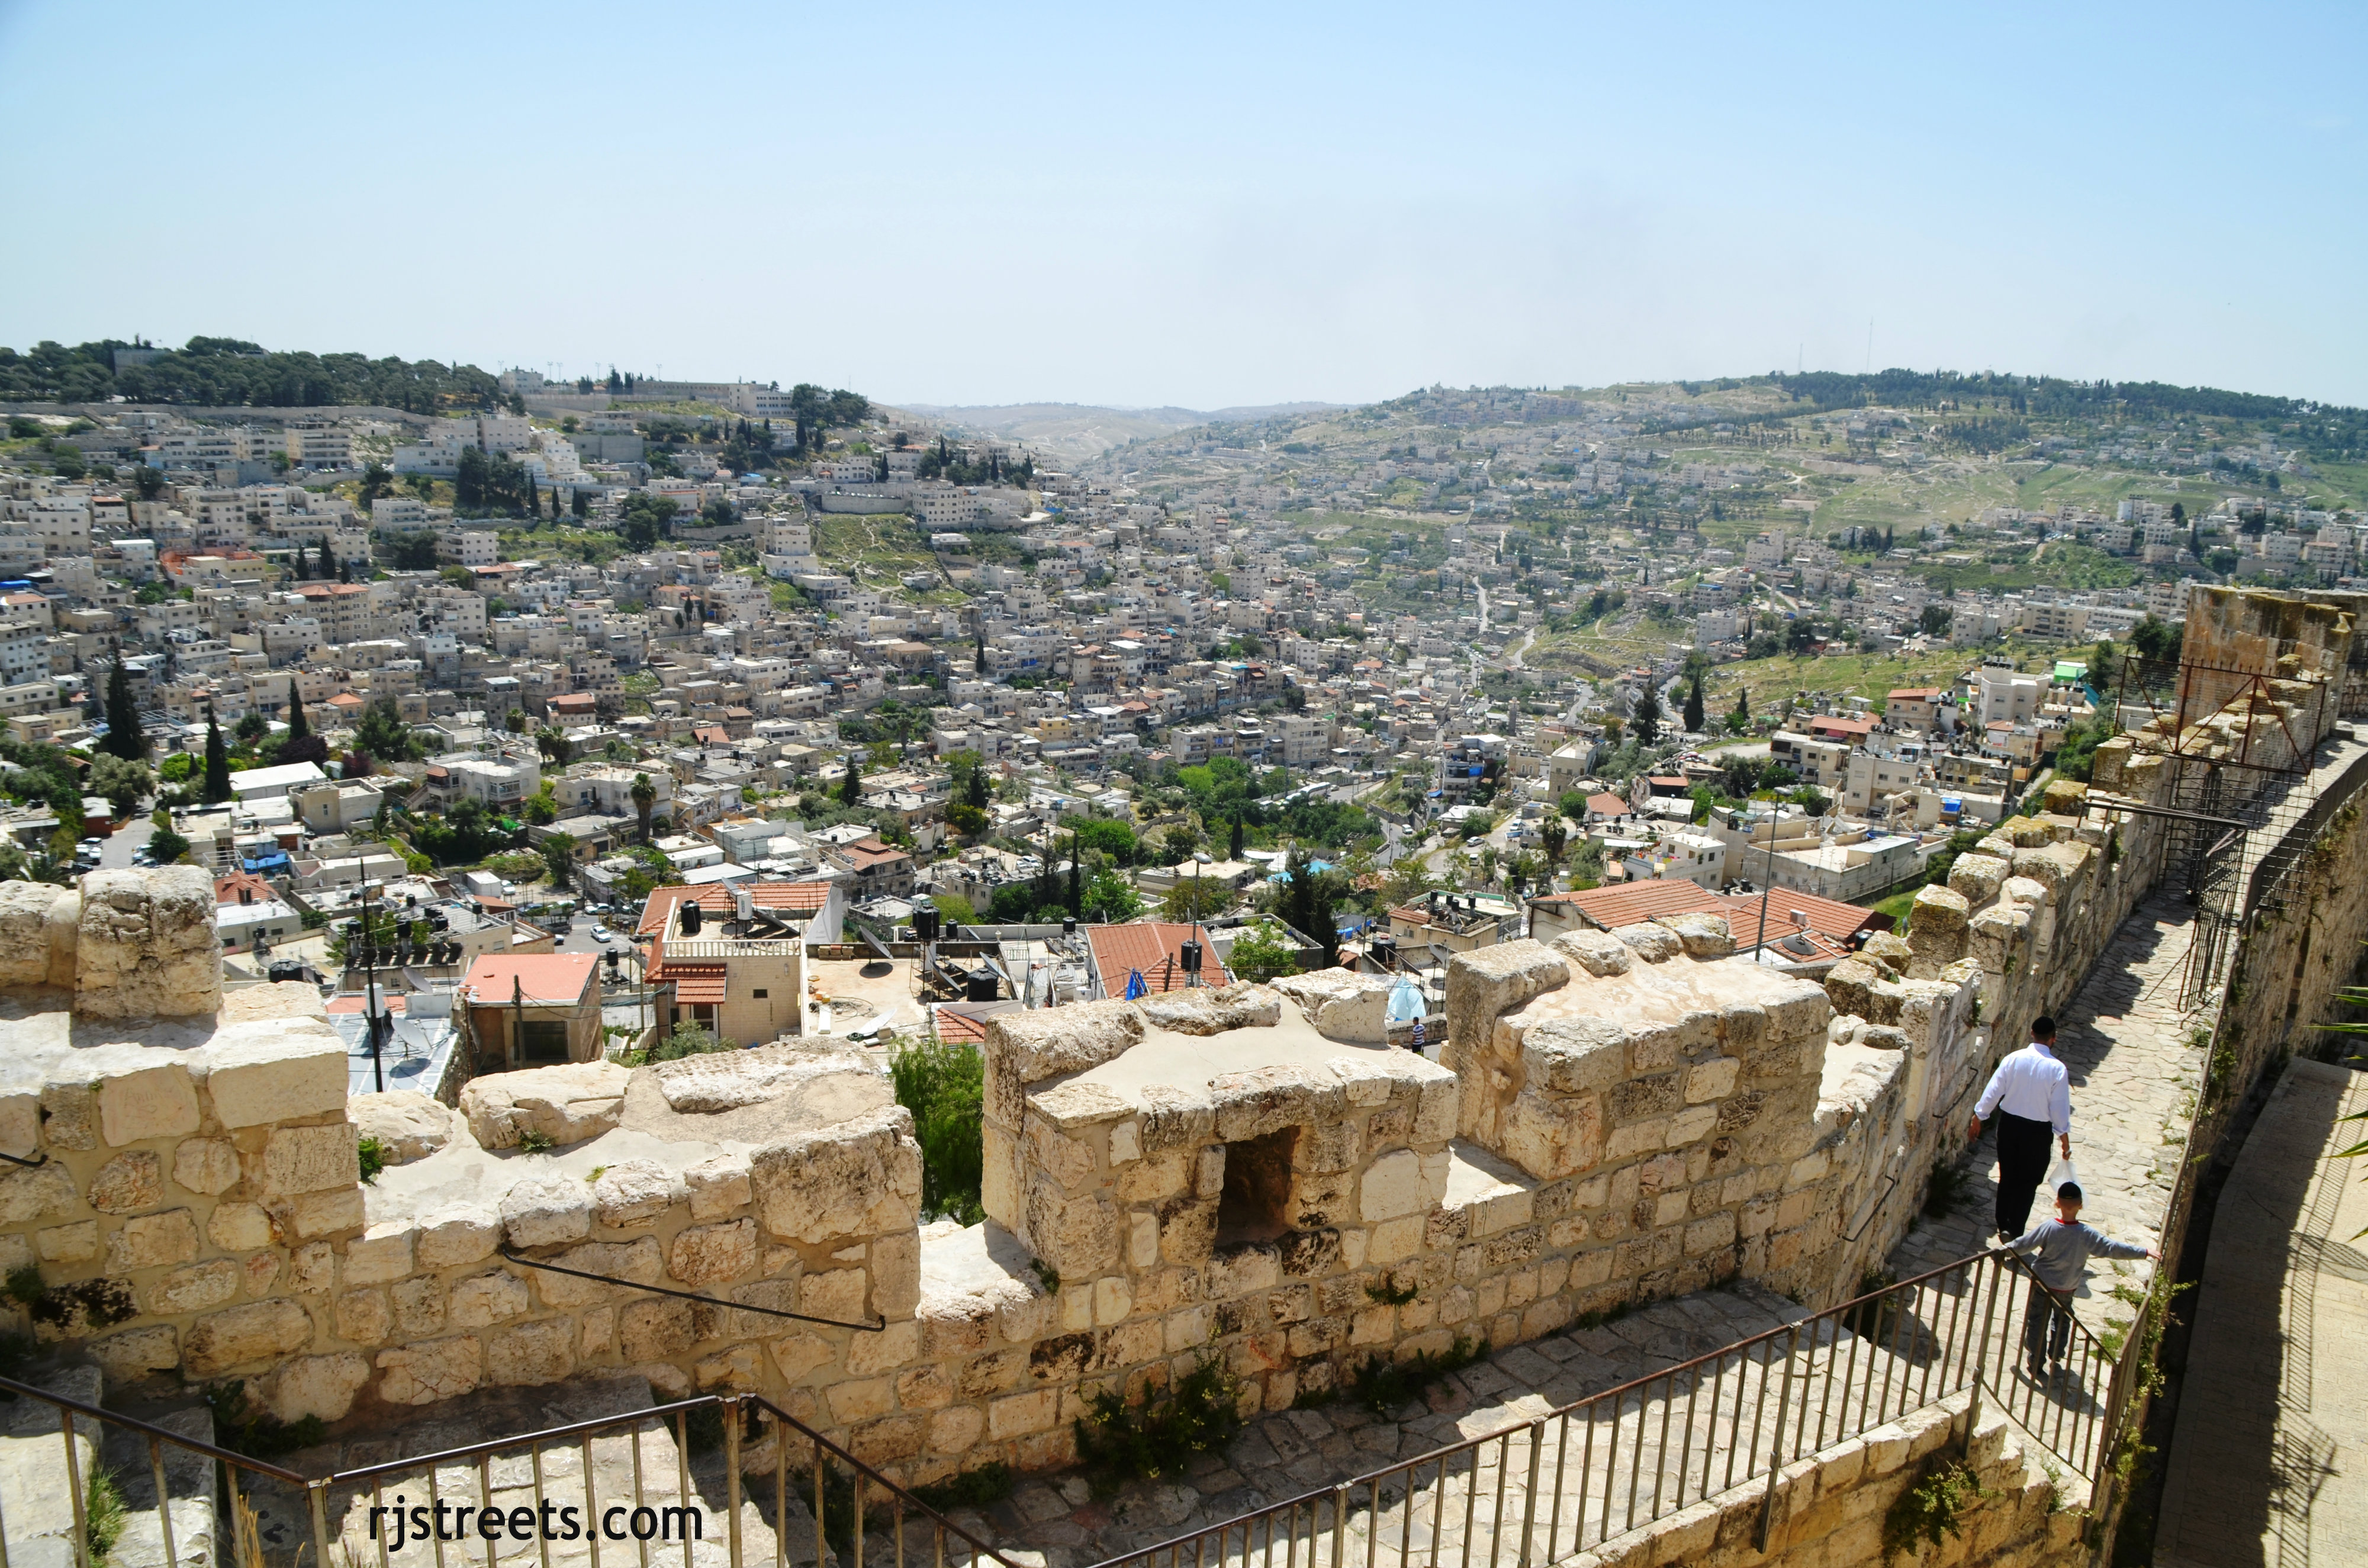 image Jerusalem, photo Silwan, picture from Old City walls